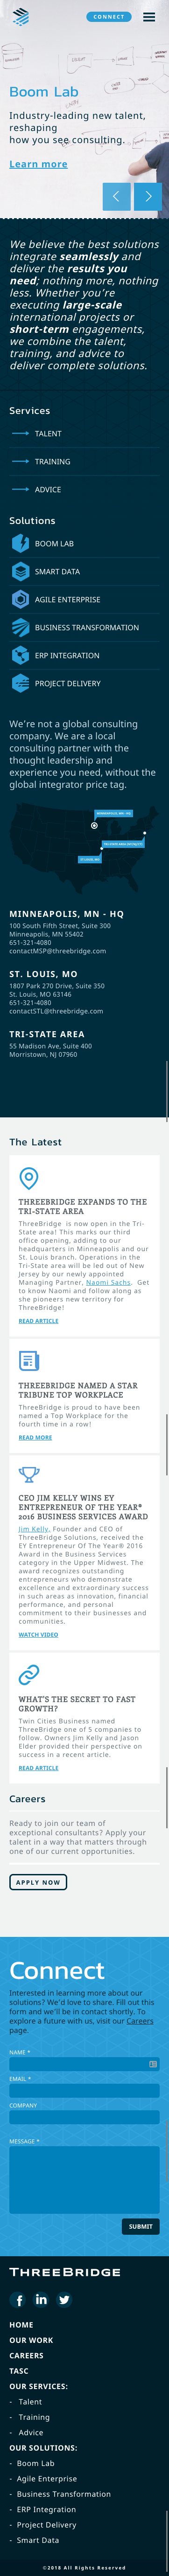 three bridge home page